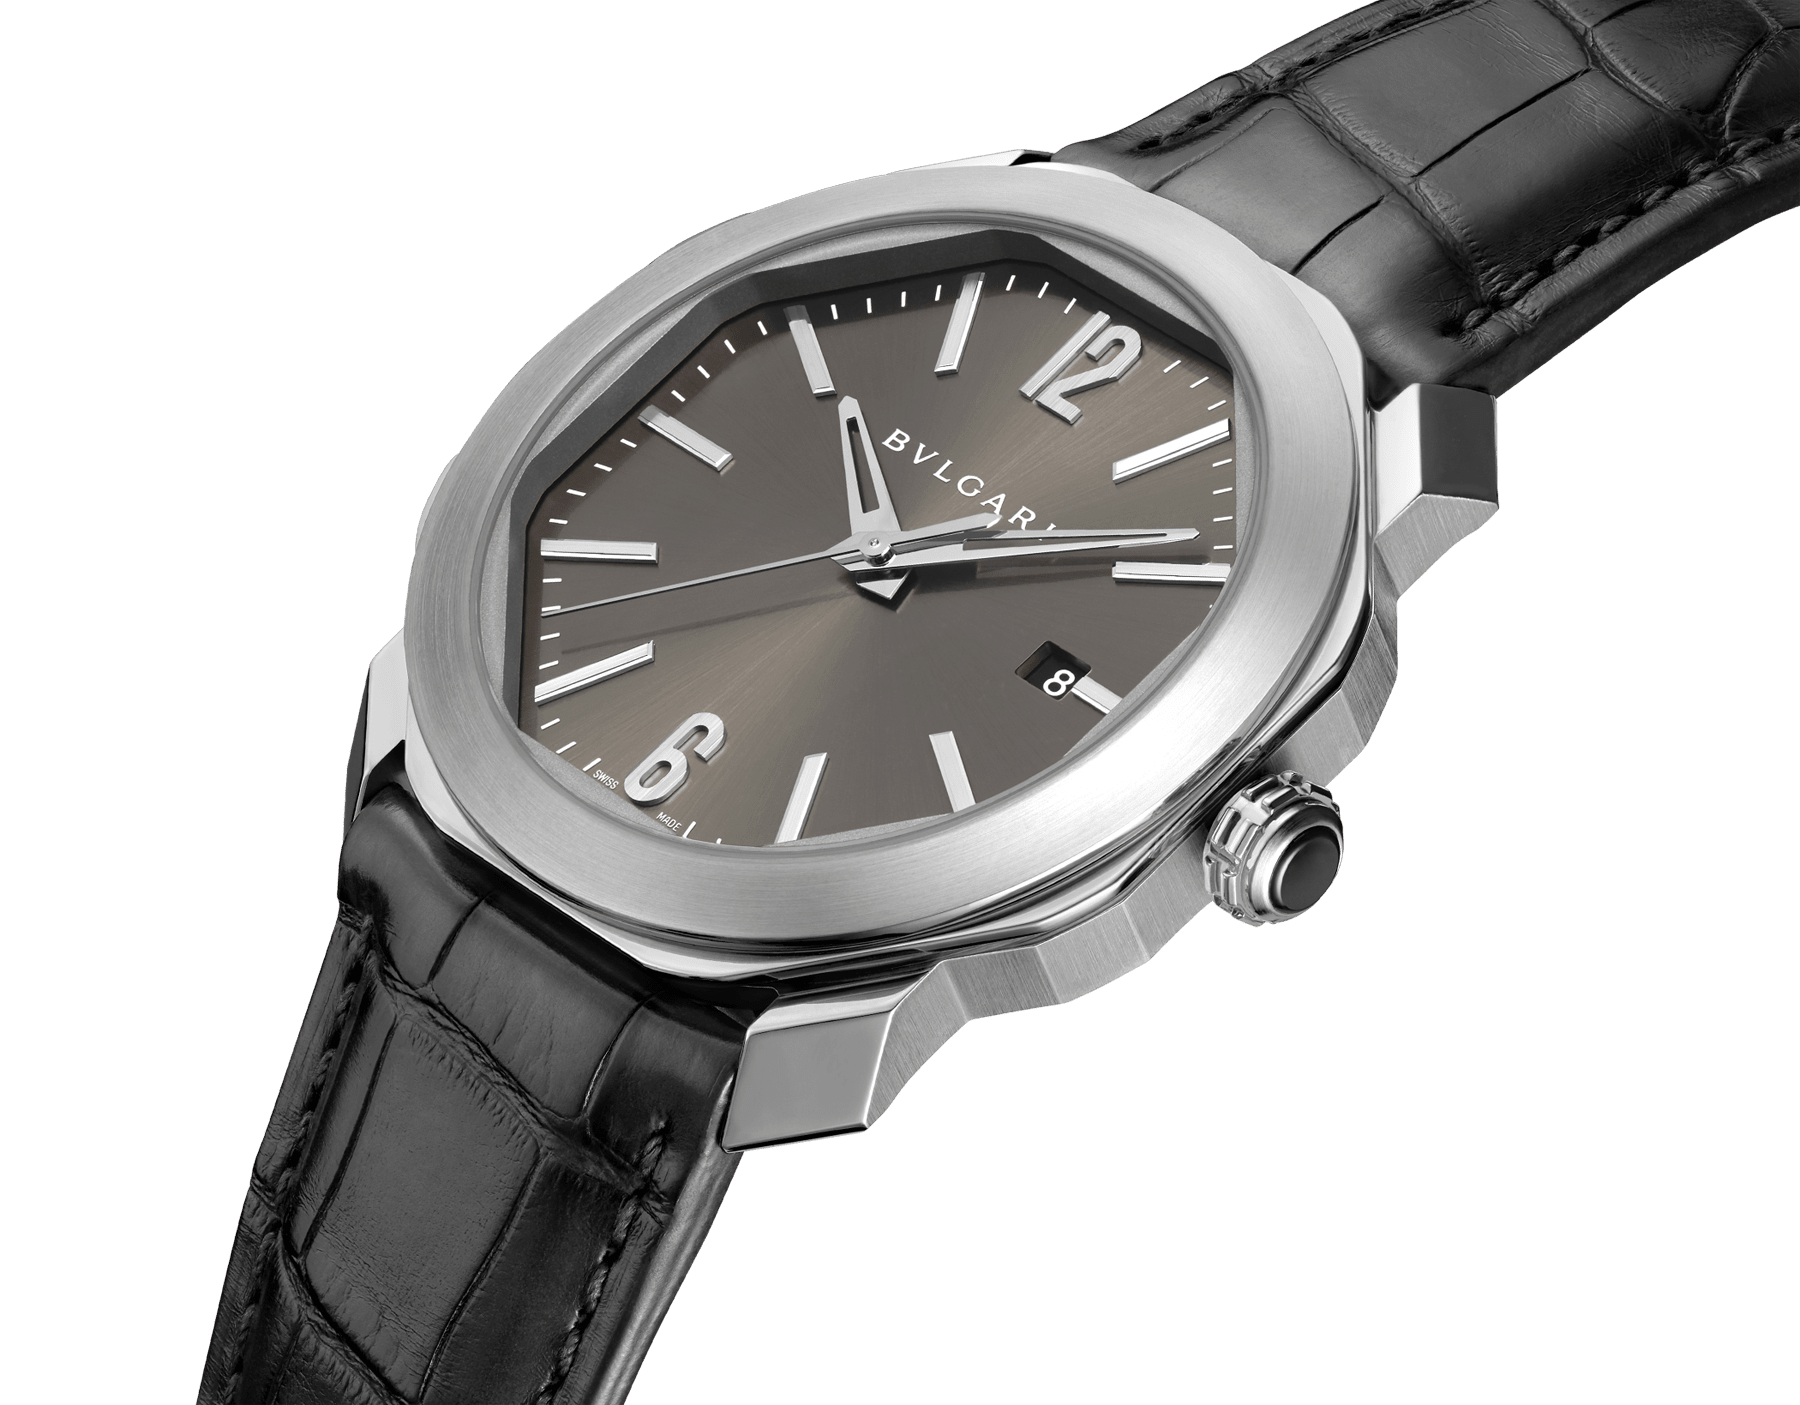 Octo Roma watch with mechanical manufacture movement, automatic winding, stainless steel case, anthracite dial and black alligator bracelet. 102855 image 2